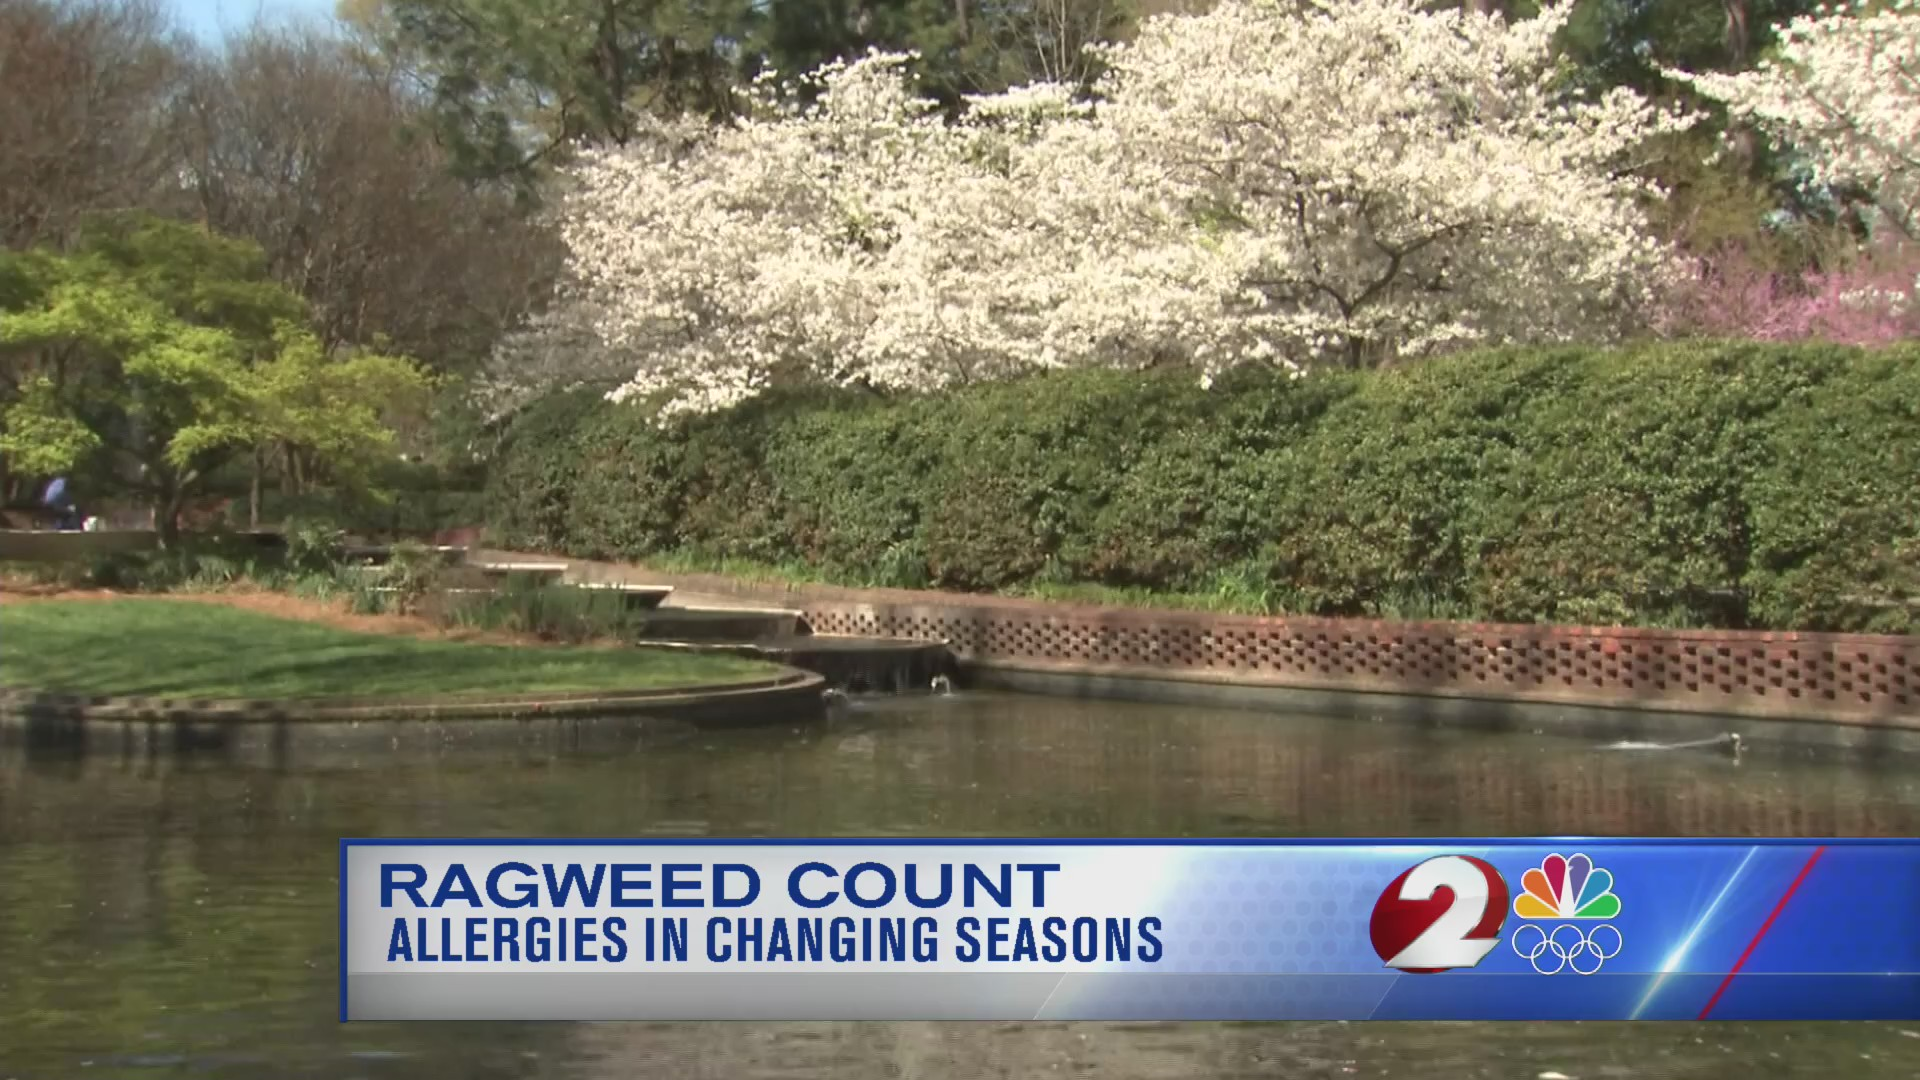 Ragweed count and allergies